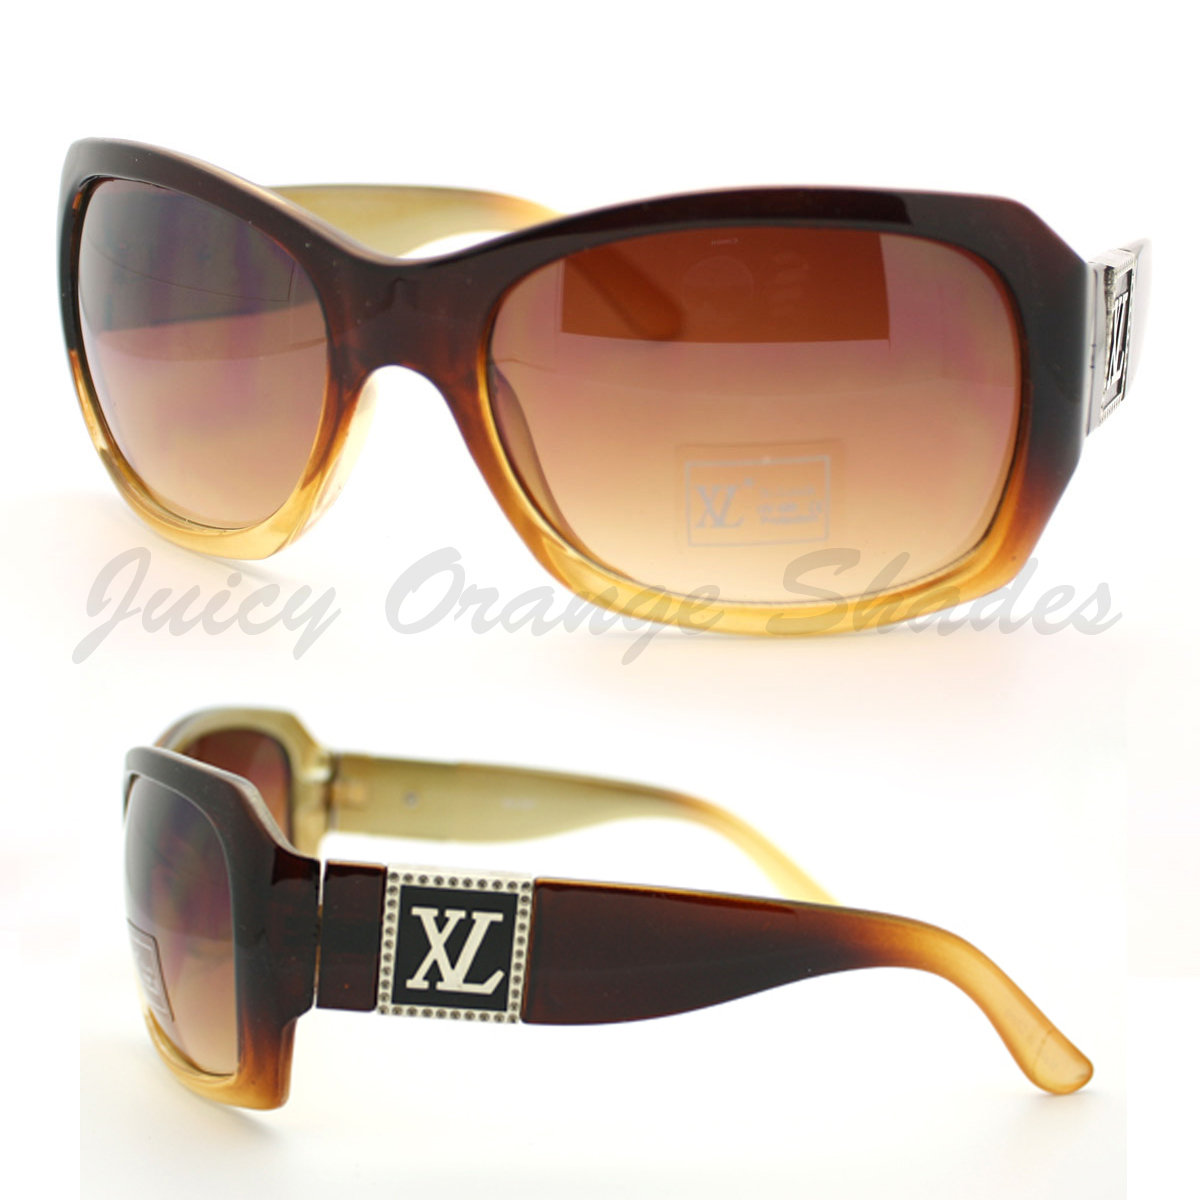 WOMEN'S BOLD CLASSIC Sunglasses DESIGNER Fashion THICK LARGE Frame NEW